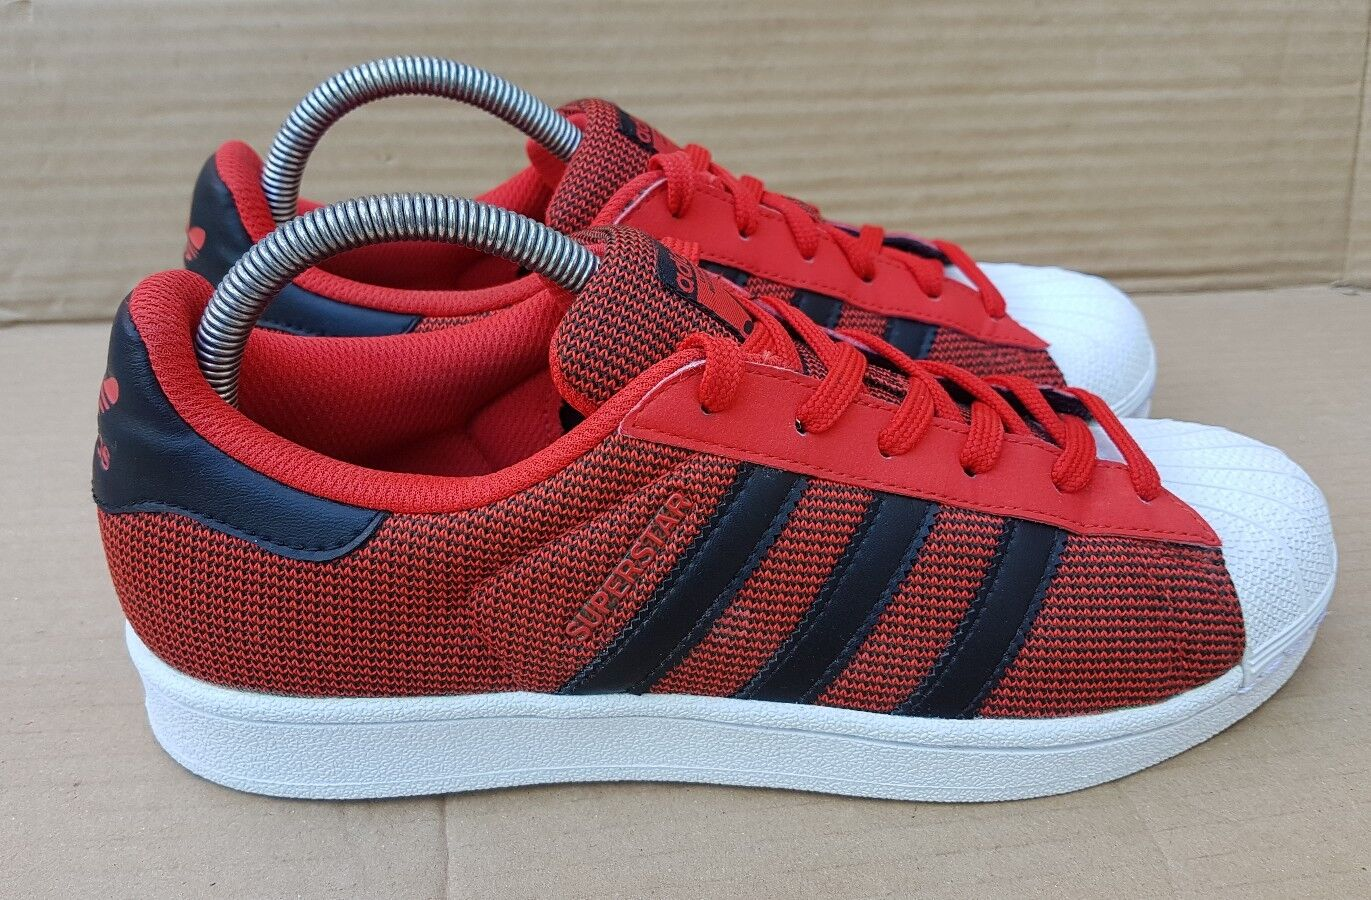 ADIDAS SUPERSTAR SHELL TOE TRAINERS TOMATO ROT WEAVE IN SIZE 6 UK EXCELLENT